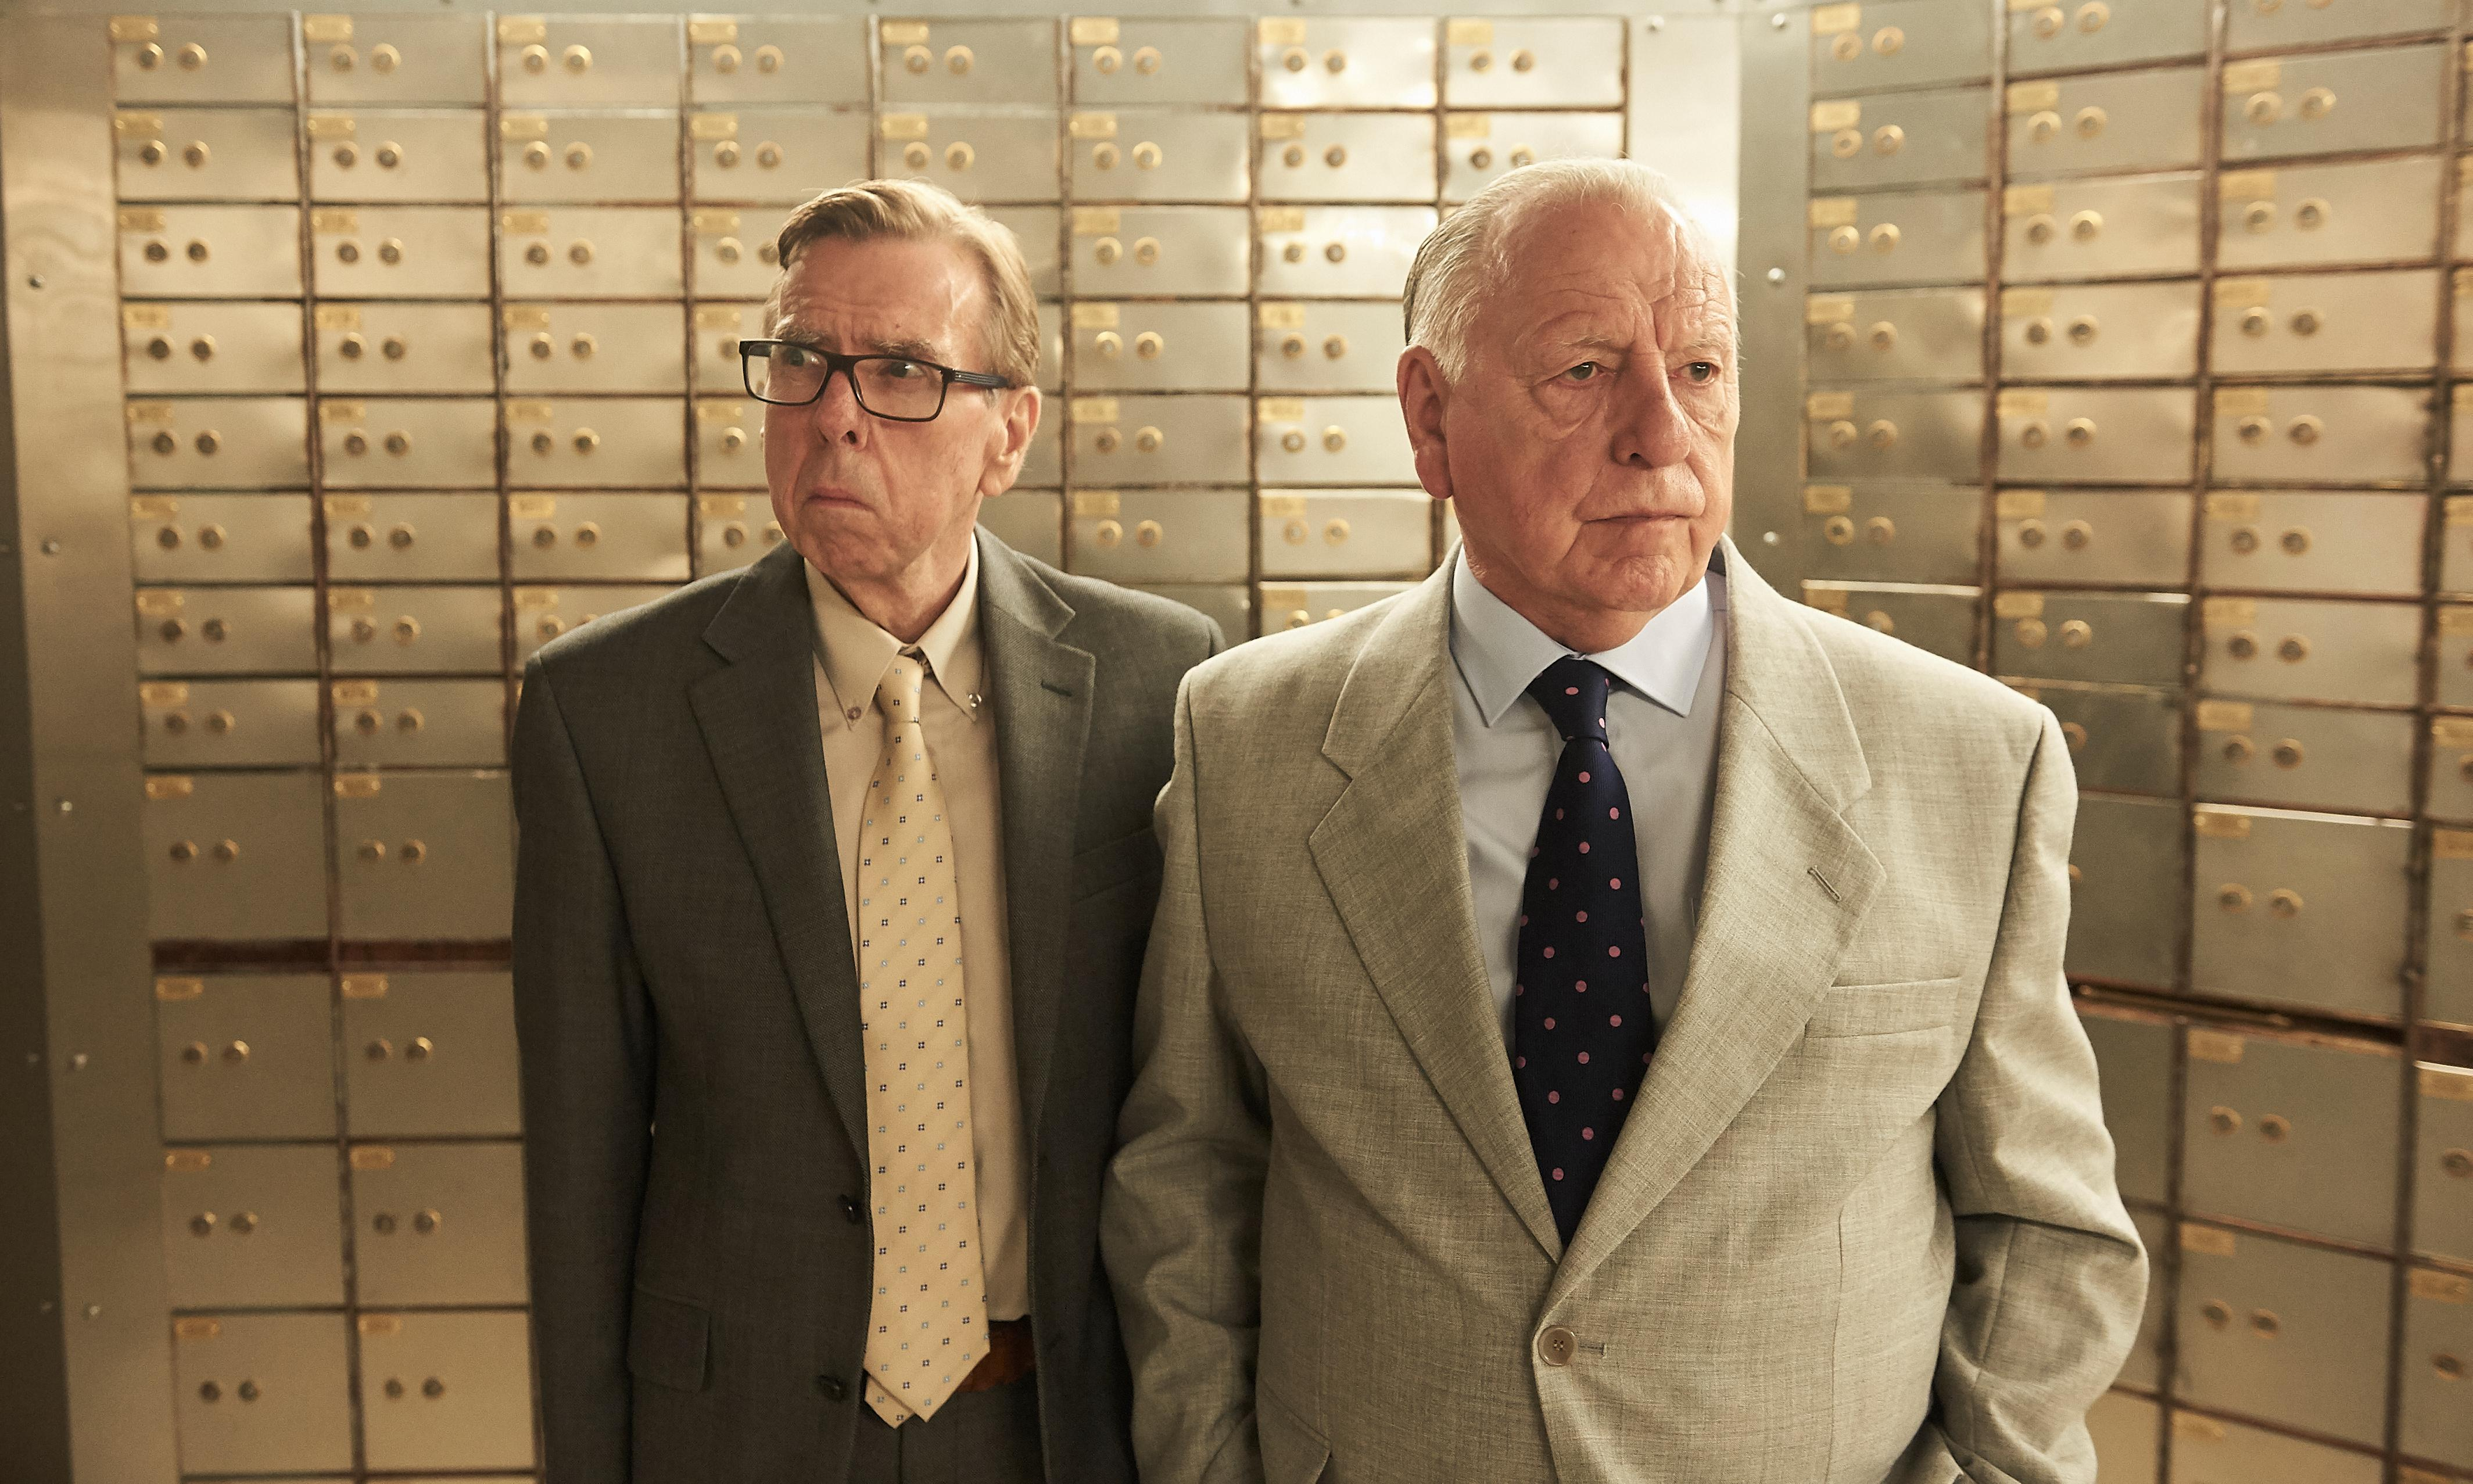 Hatton Garden review – if only the real robbery had this attention to detail